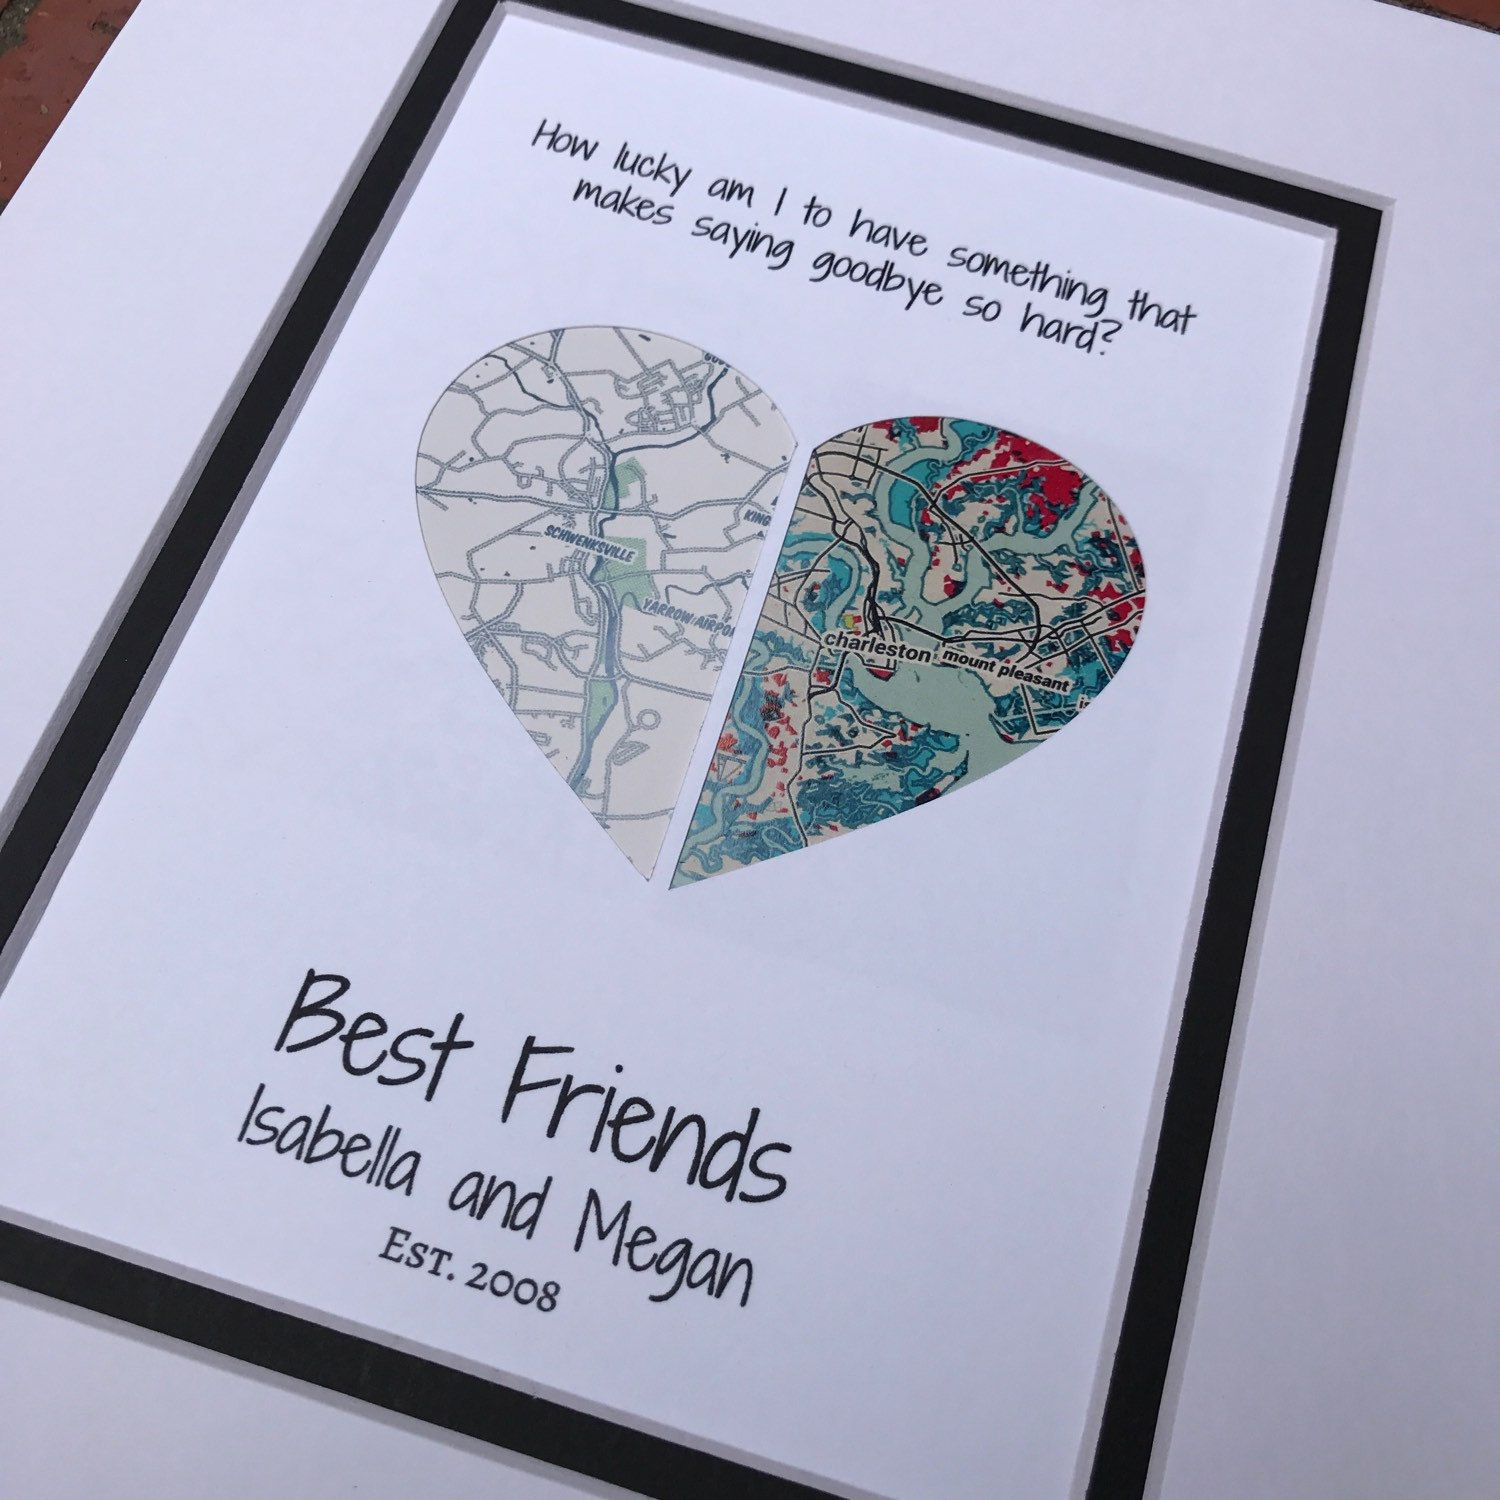 Personalized Note Cards Long Distance Relationship Gift Best Friends Note Cards Moving Away Gift Best Friend Moving Gift